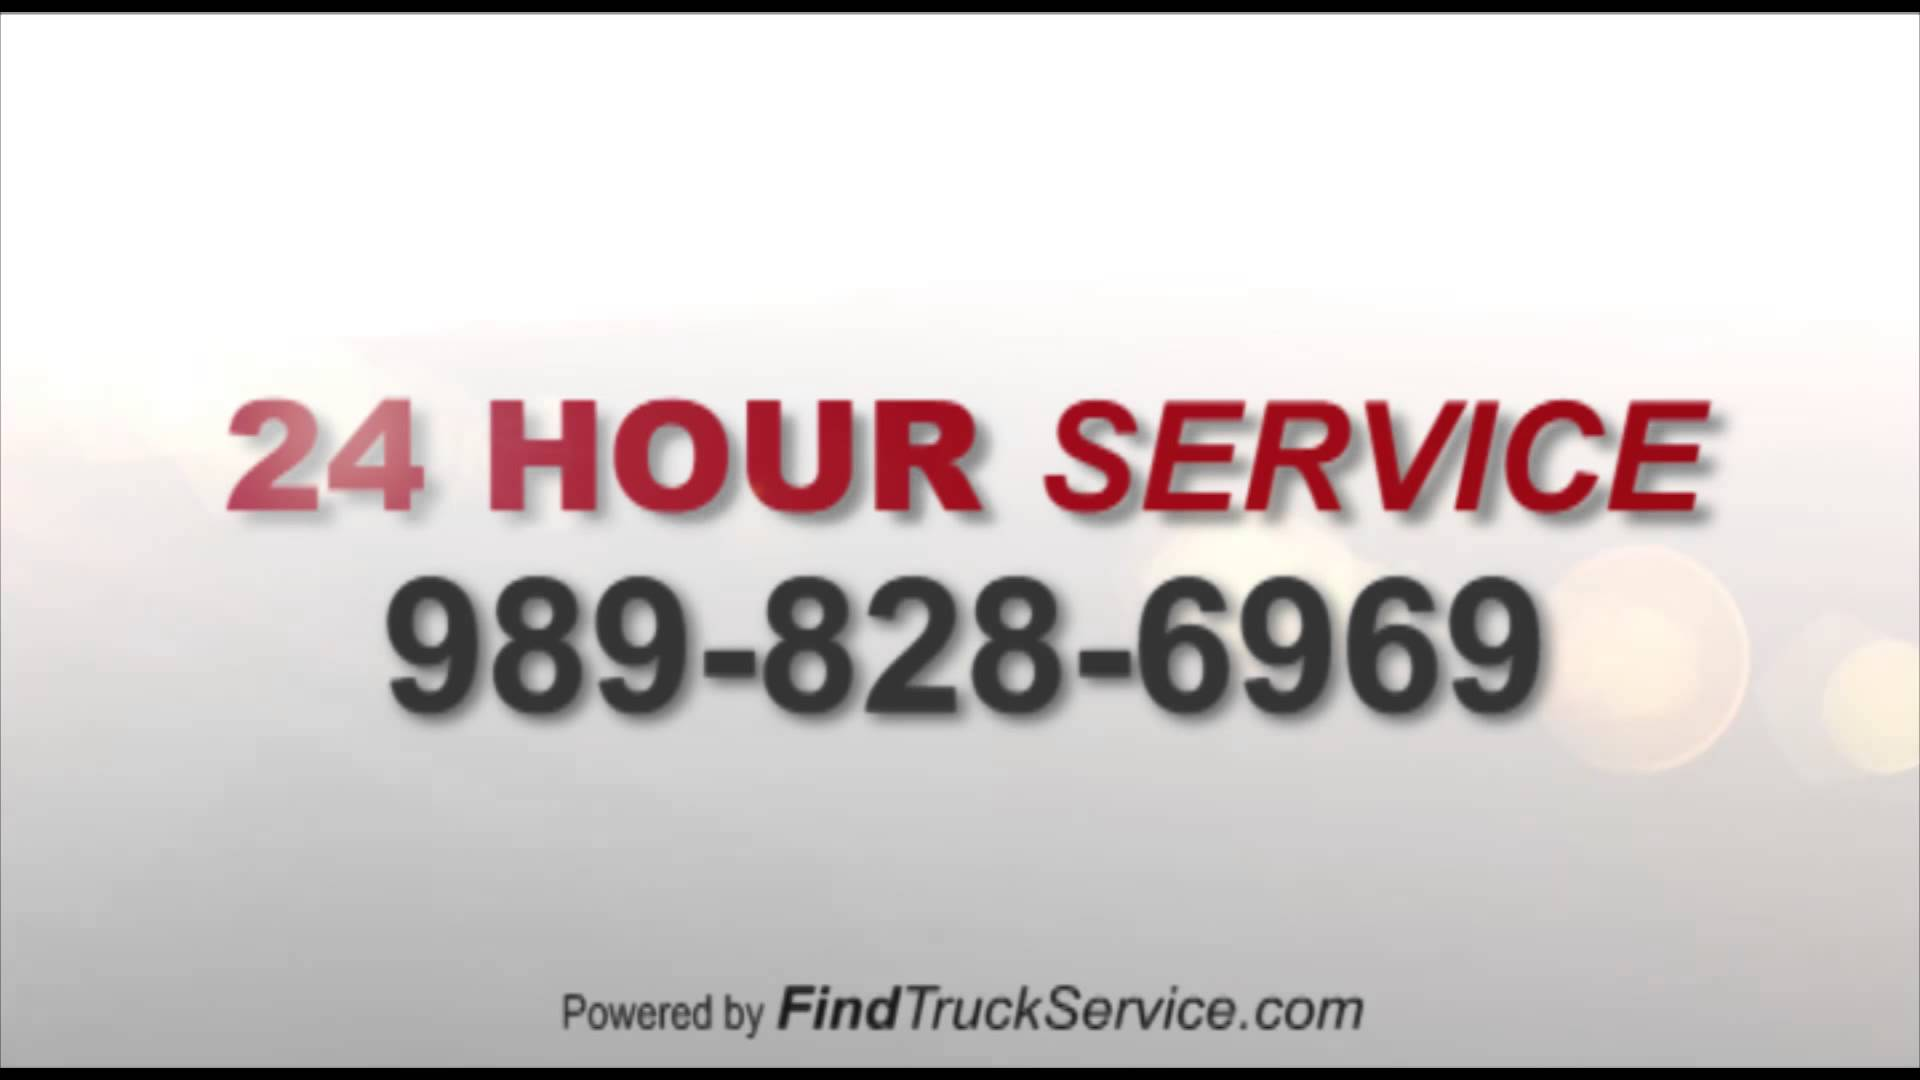 AA Truck Towing & Roadside Repair in Mount Pleasant, MI | 24 Hour Find Truck Service